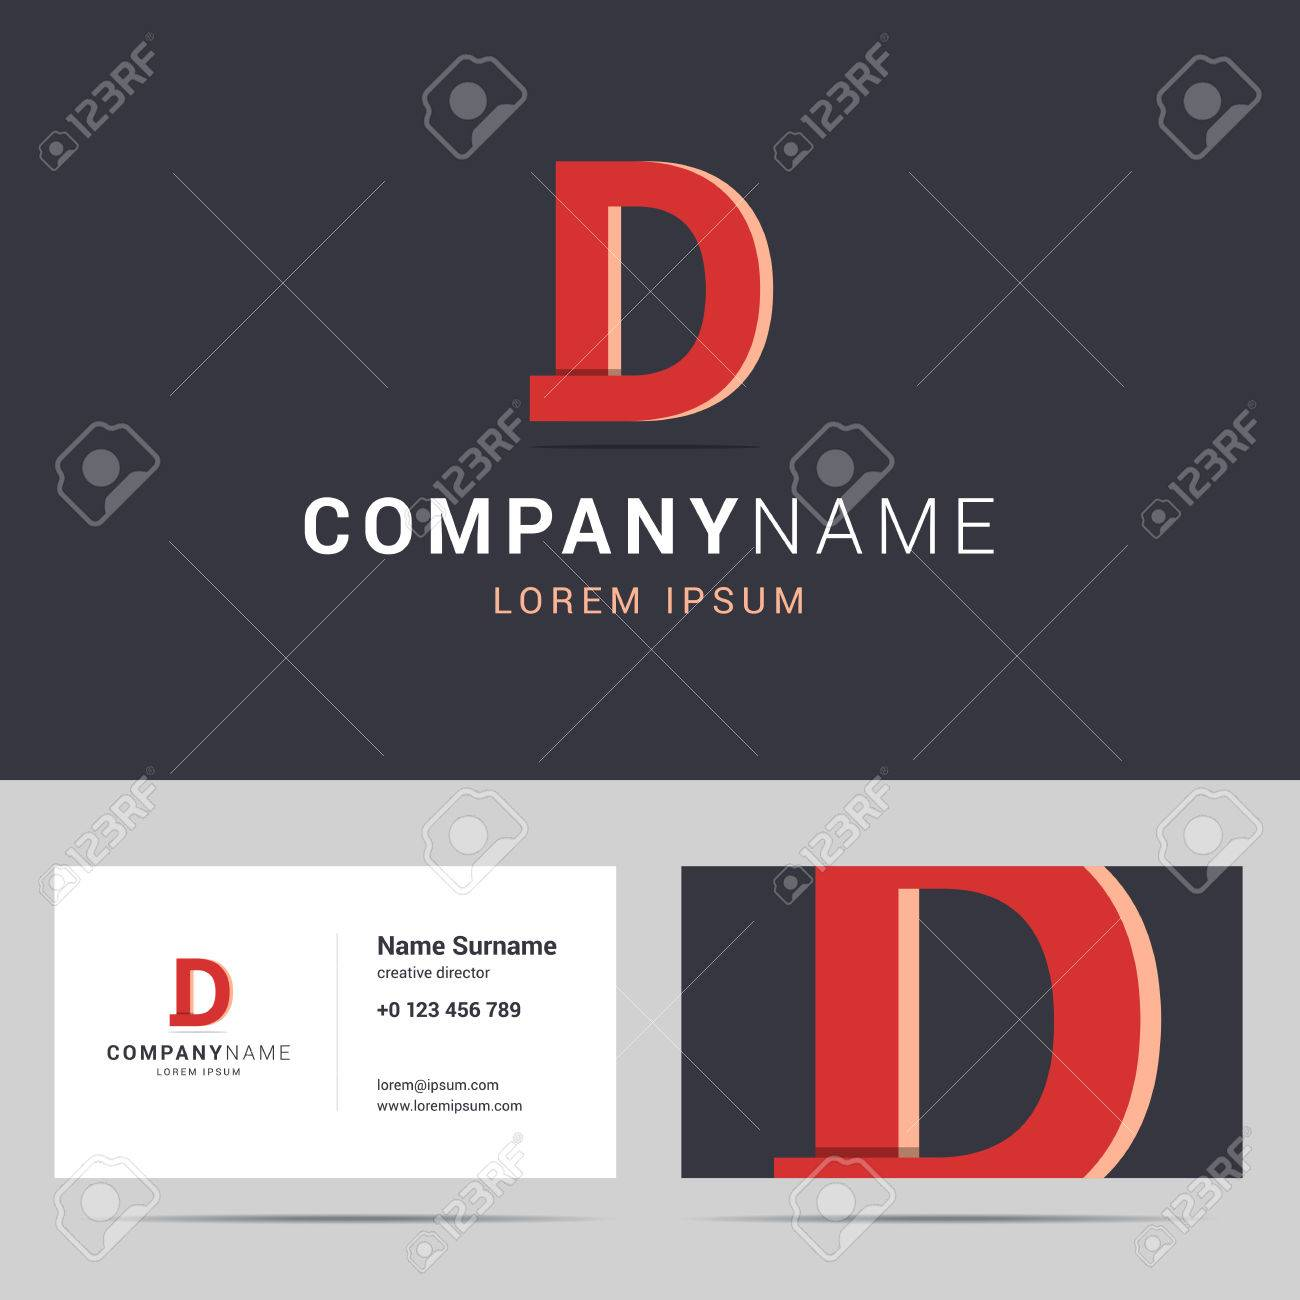 Logotype logo and business card template stylized letter d logotype logo and business card template stylized letter d with overlapping effect and shadow colourmoves